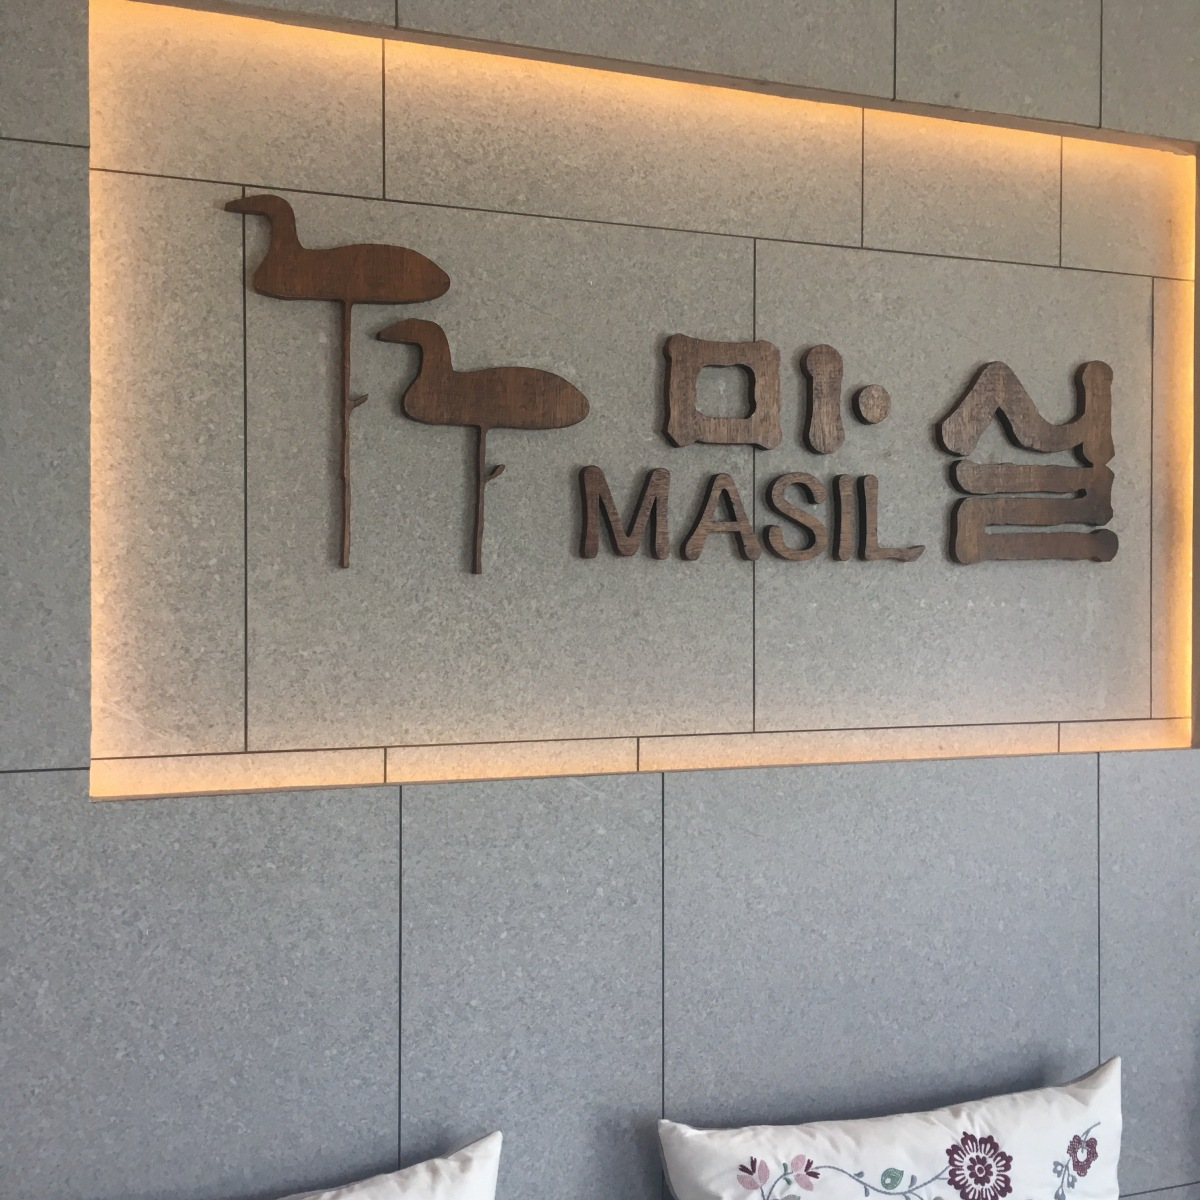 My Korean Food adventure continues at Masil – Jellybeans in